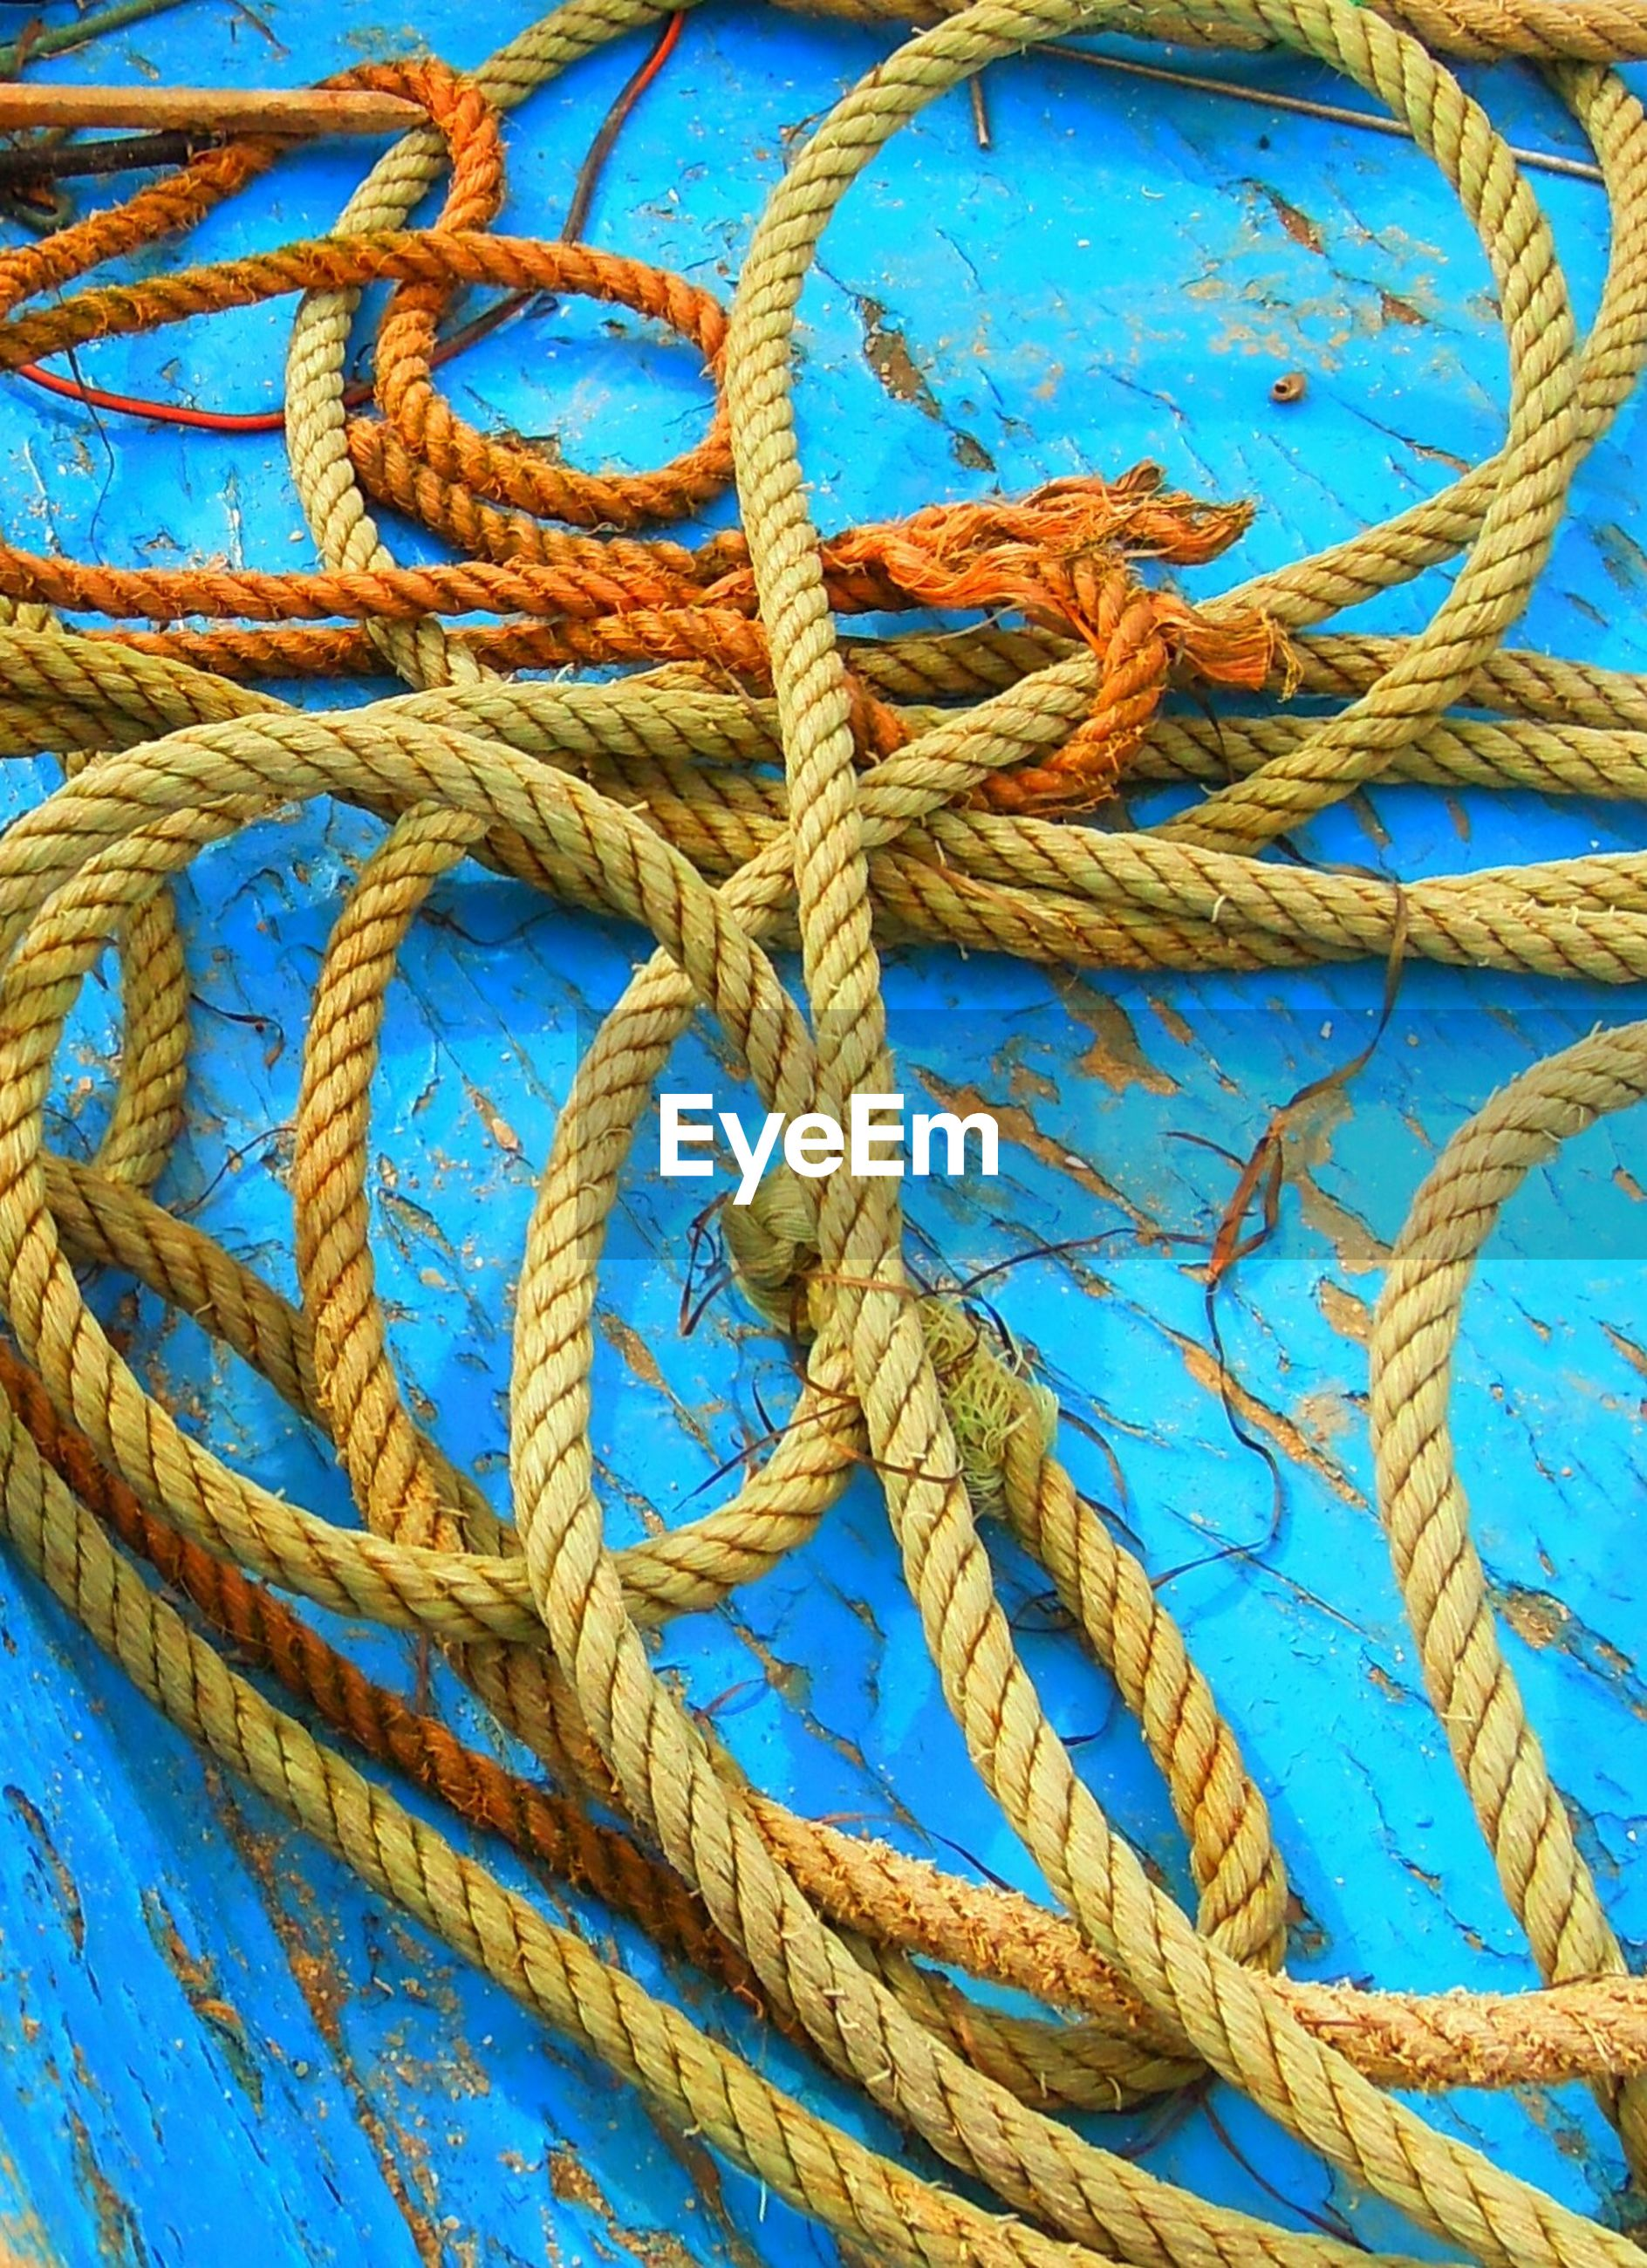 High angle view of ropes on old boats